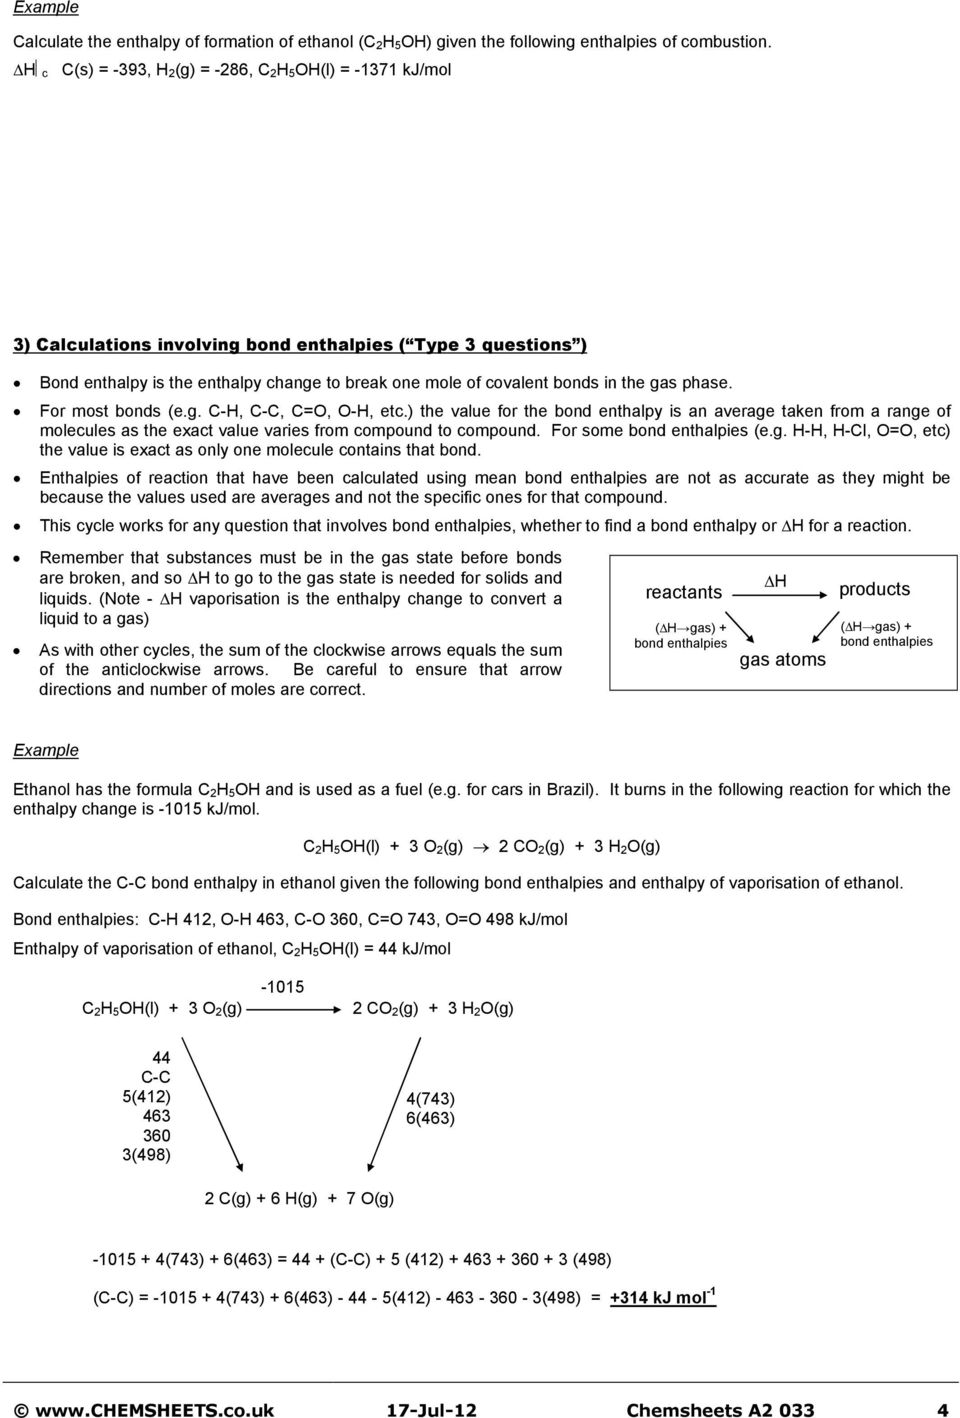 17 Jul 12 Chemsheets A Pdf